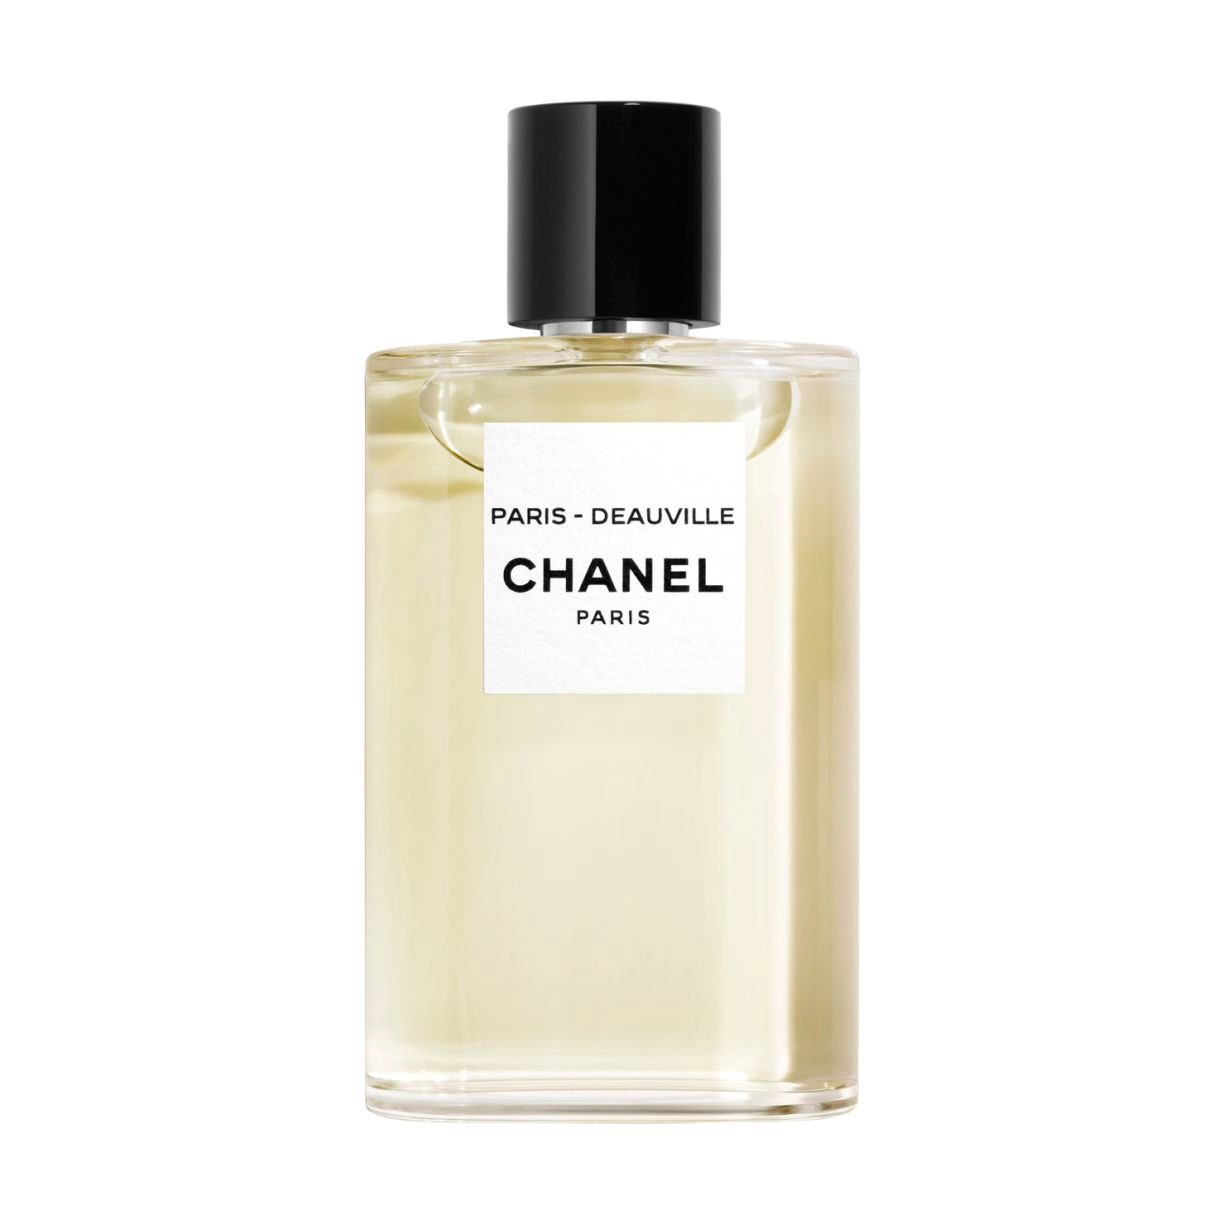 PARIS - DEAUVILLE LES EAUX DE CHANEL - EAU DE TOILETTE SPRAY 50ml